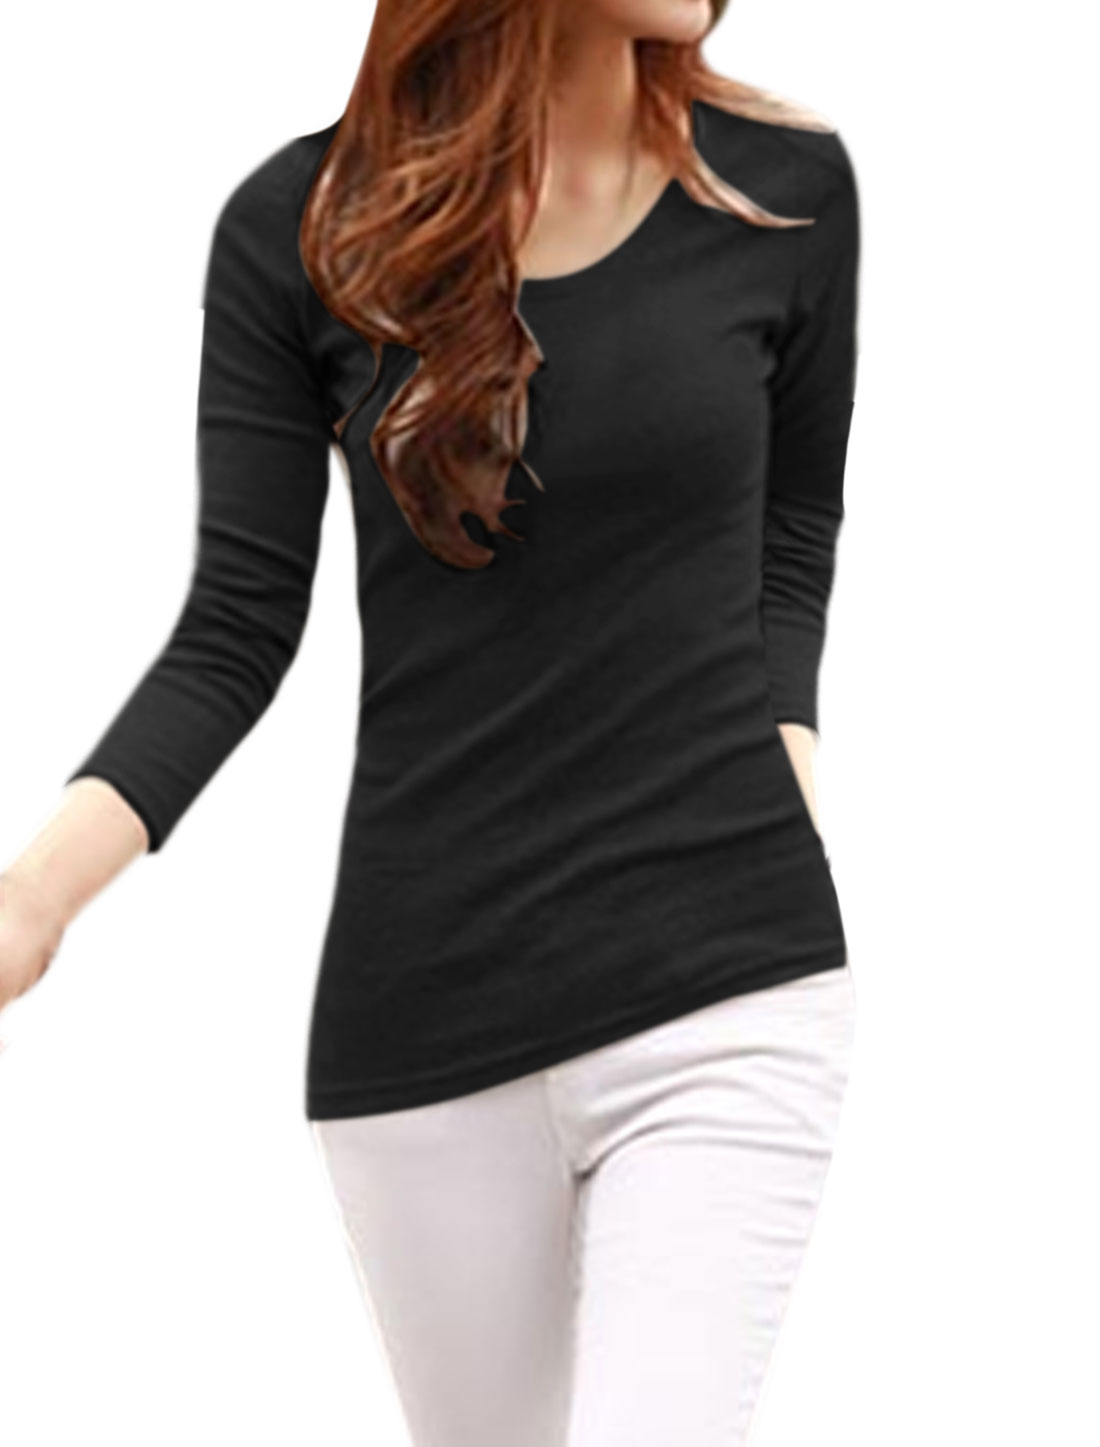 Women Long Sleeves Asymmetric Hem Slim Fit Tee Shirt Black M